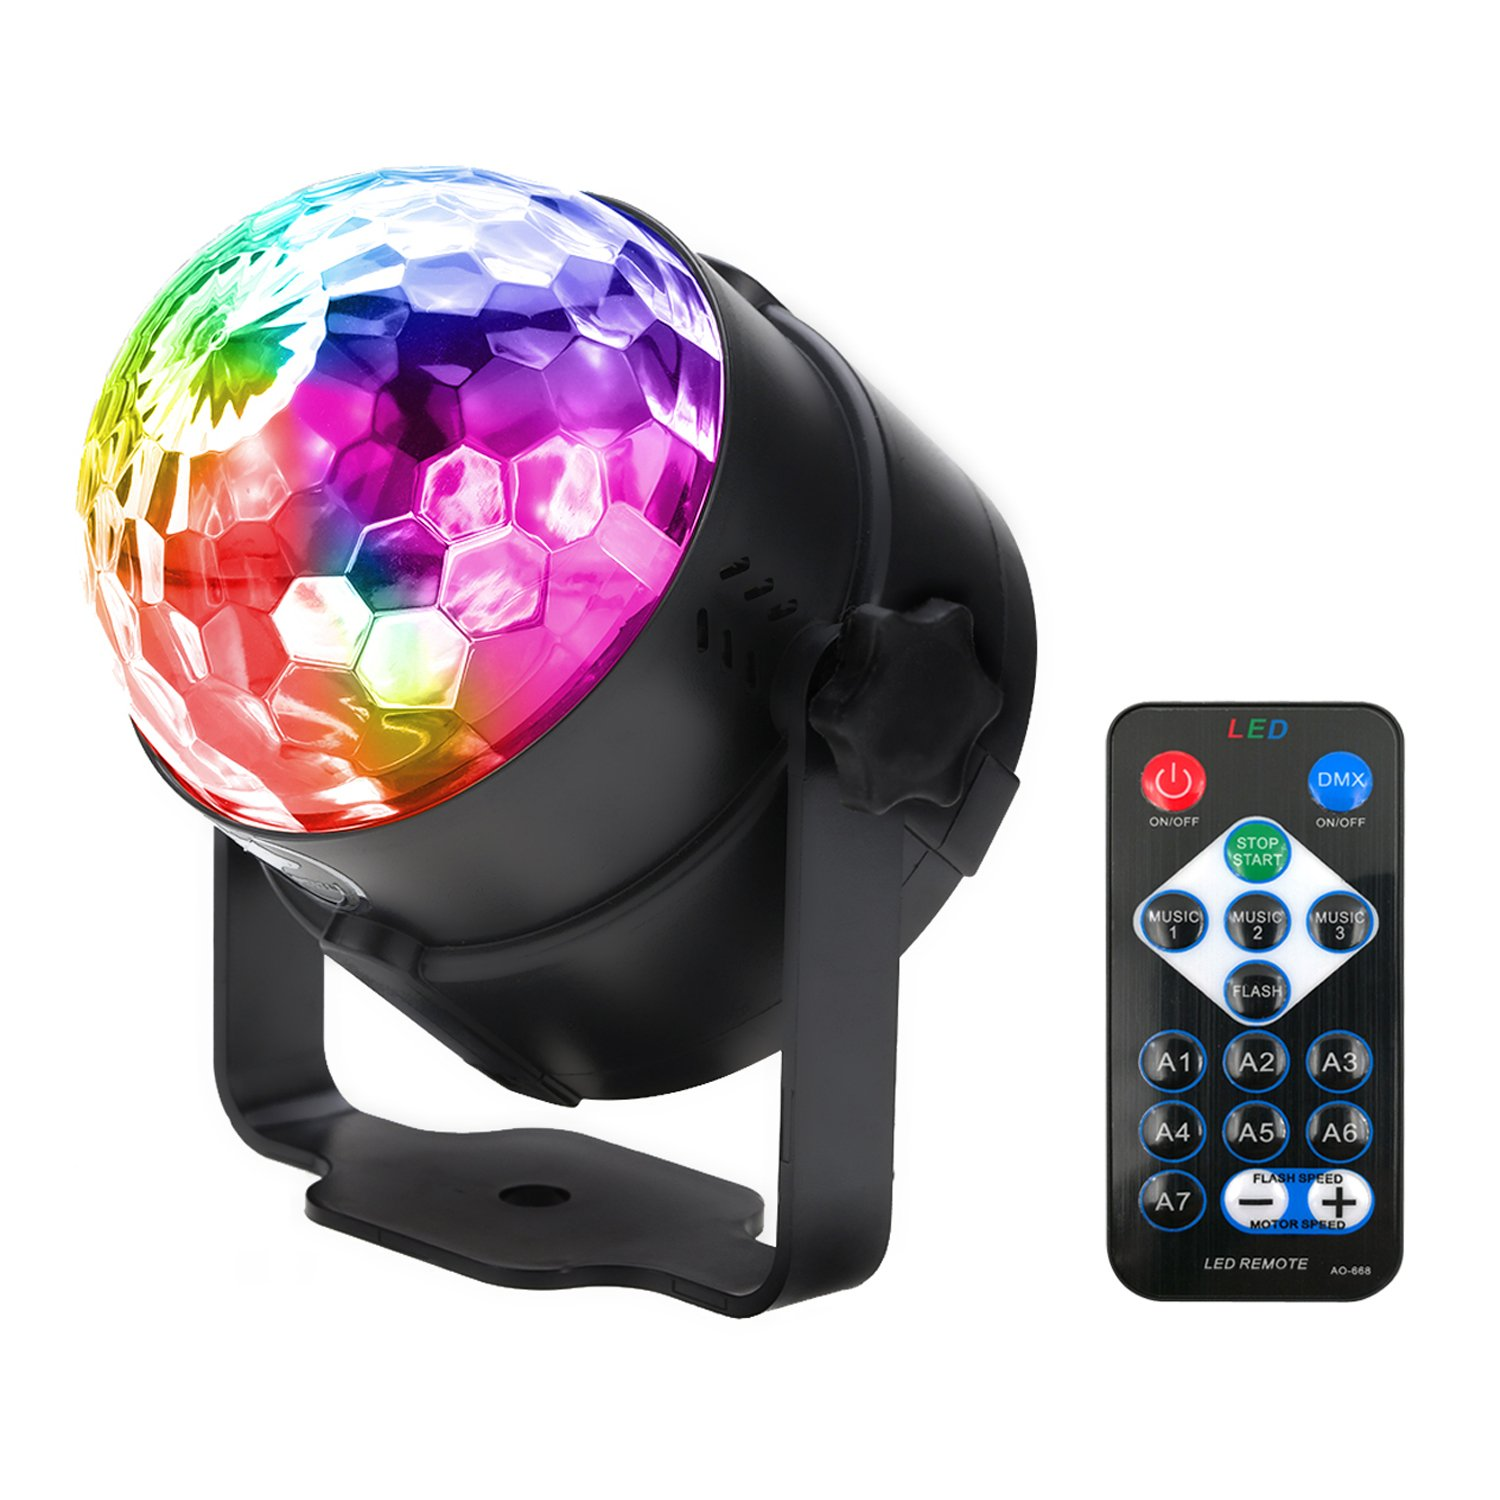 Sound Activated Disco Ball LED Strobe Light , RBG Disco Ball, Portable Strobe Lamp 7 Modes Stage Par Light for Home Room Dance Parties Birthday DJ Bar Karaoke Xmas Wedding Show Club Pub with Remote by WINSAFE